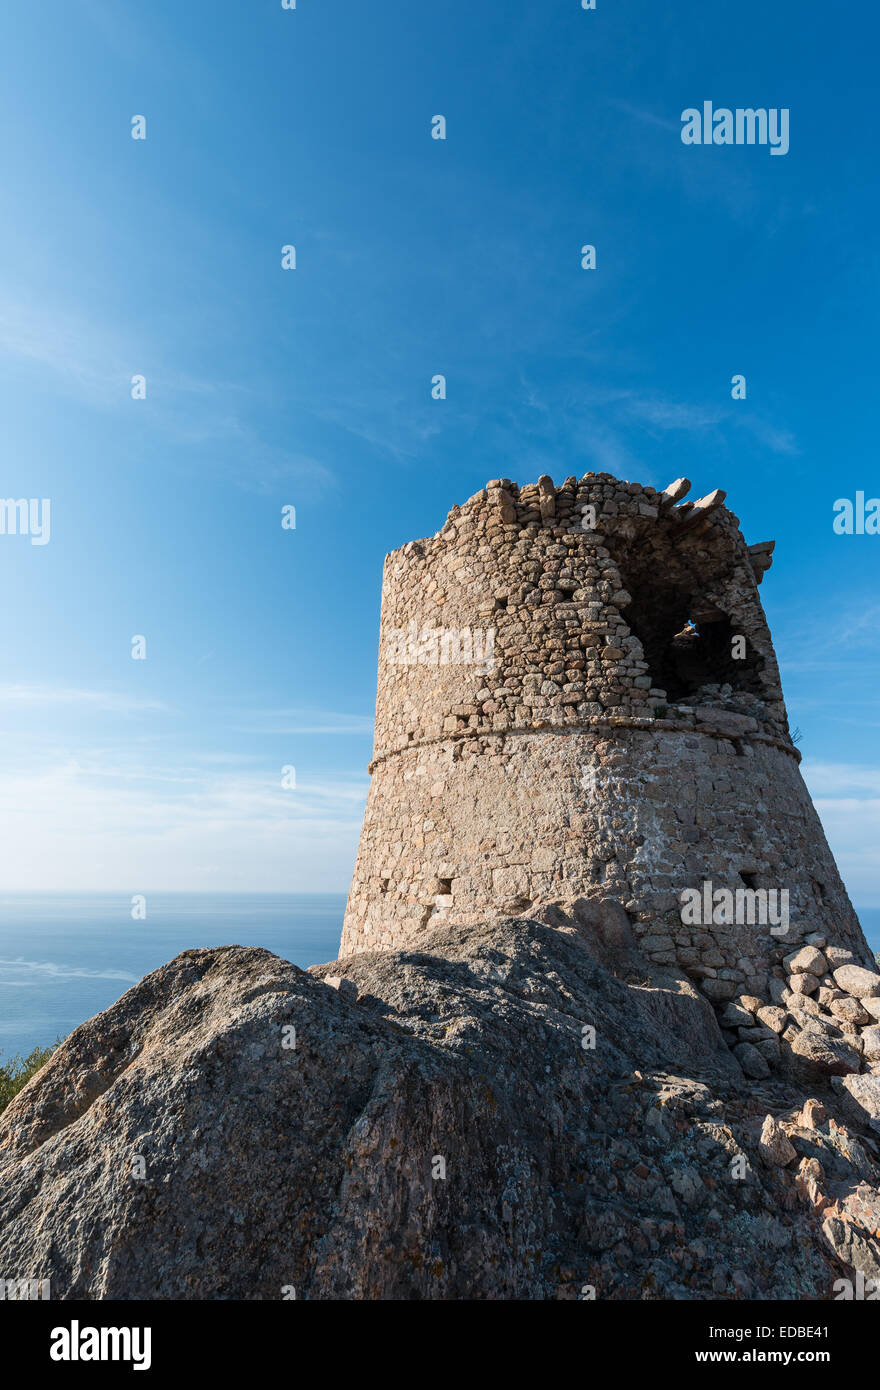 Half-ruined stone tower, Genoese tower, Corsica, France - Stock Image